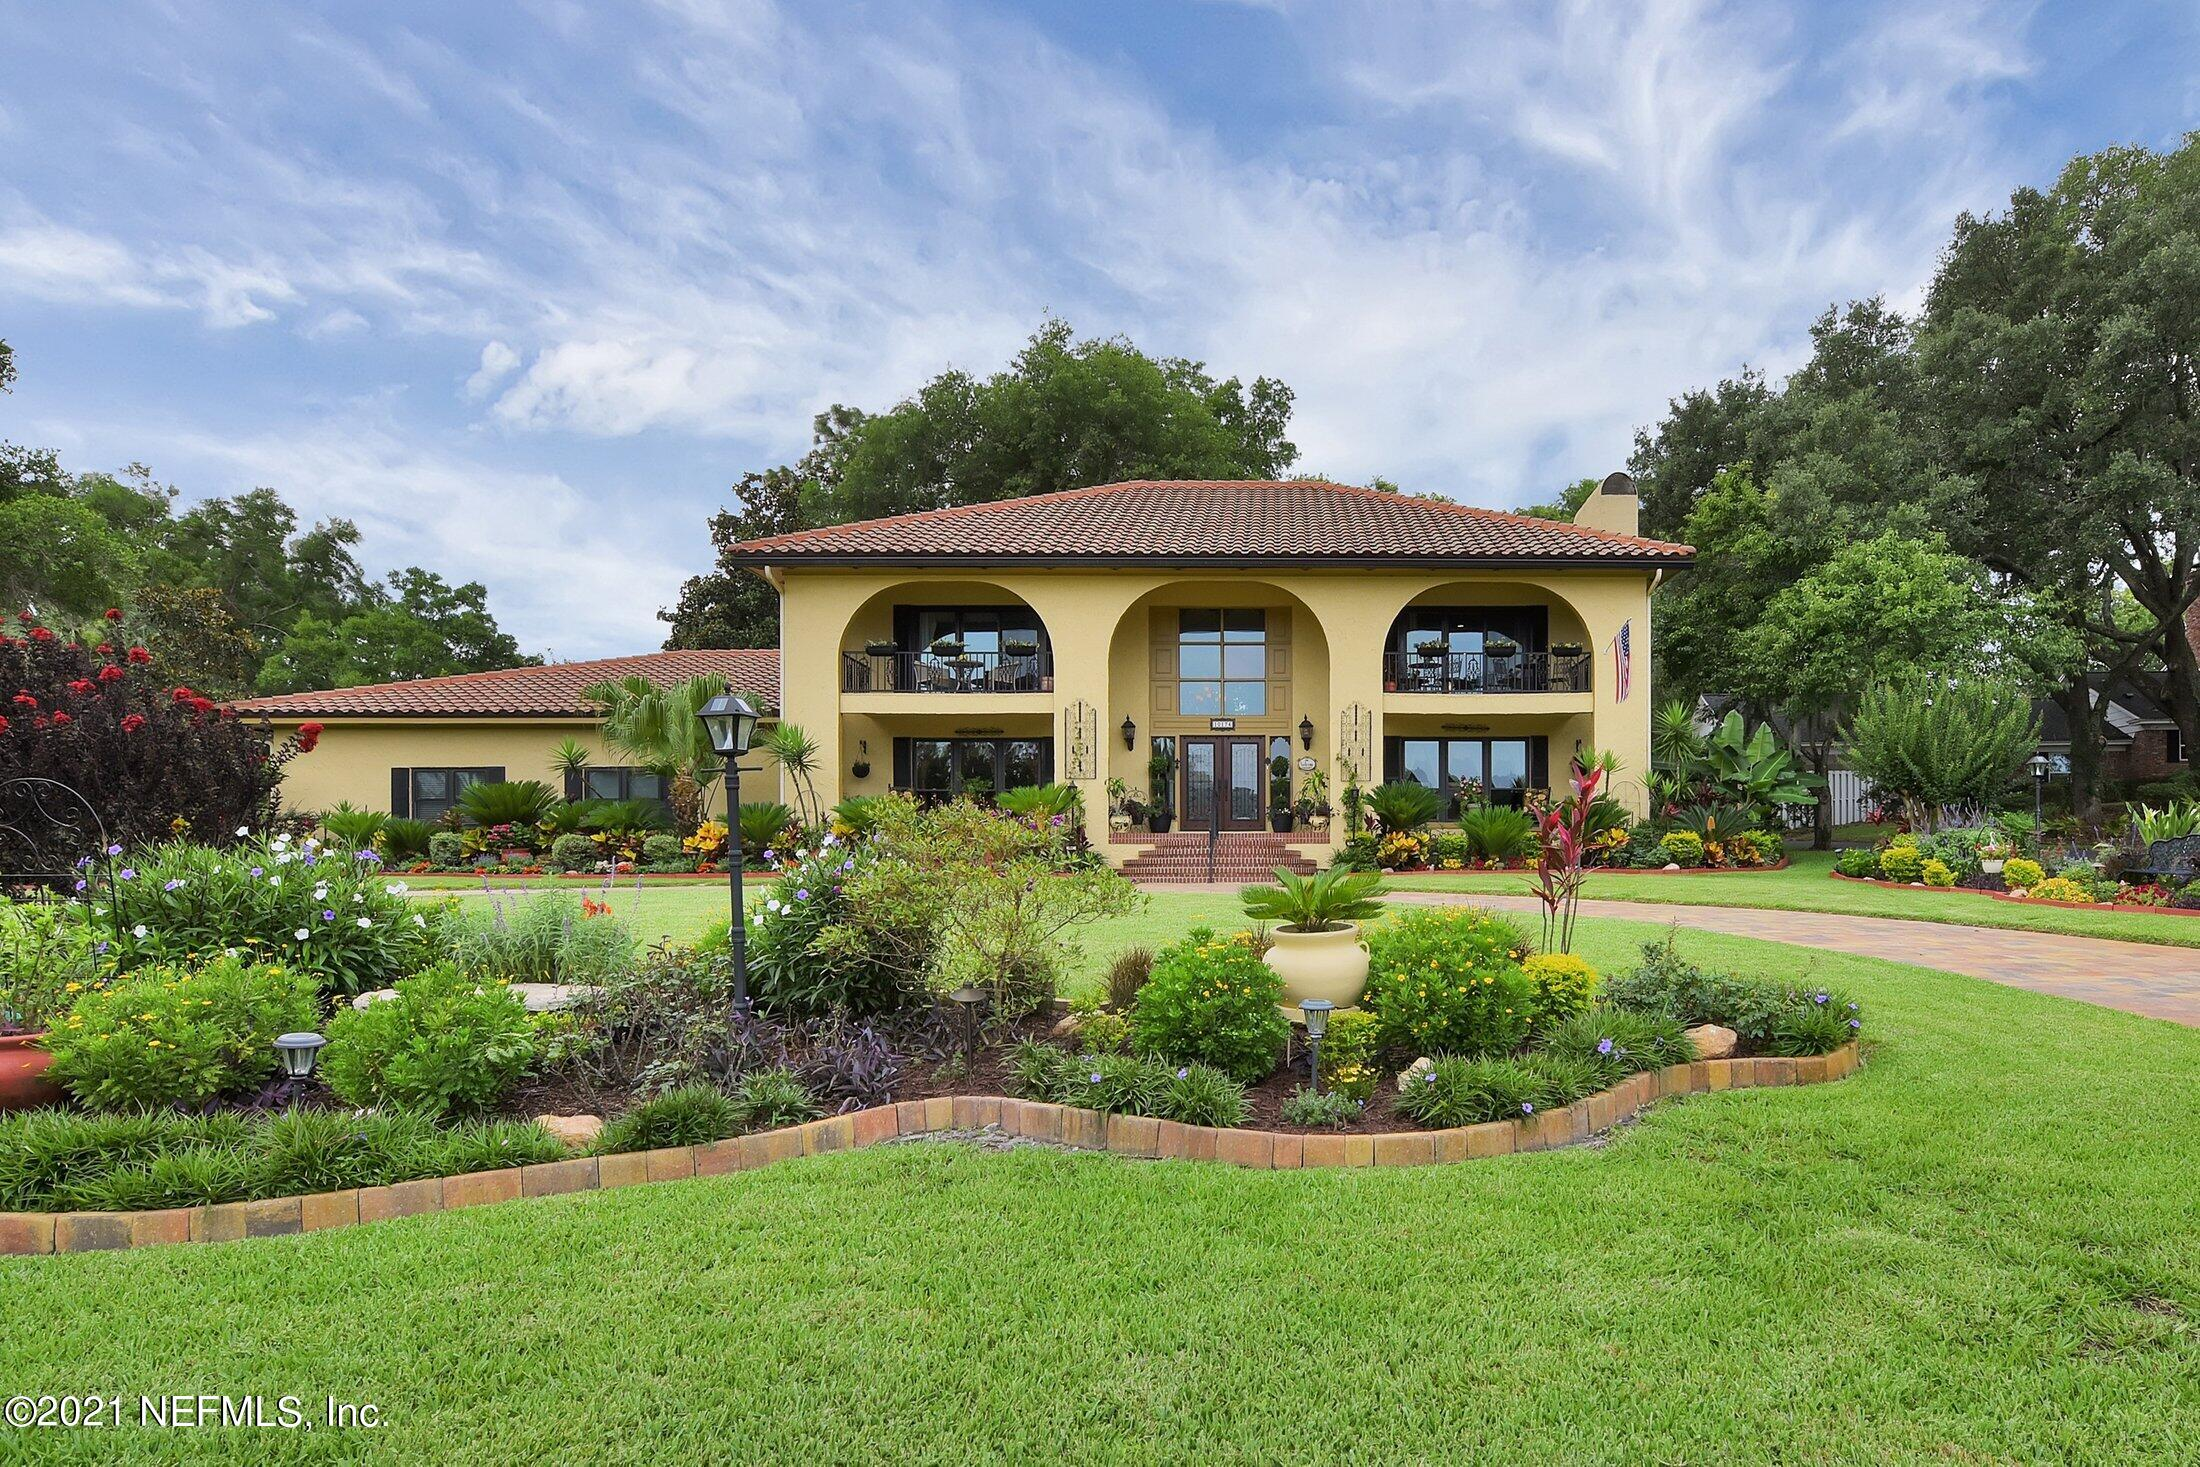 This unique and tranquil Mediterranean home is a labor of love by its owners. This home boast the most beautiful gardens in all of Deerwood coupled with the best lake view.  Sit on the front porch or balconies on the second floor outside the owner's suites and look out over Lake Mineral, Deerwood's only spring fed lake.  Home was taken down to the studs and completely updated in 2015. Home features an oversized 2.5 car garage with 2 seperate storage rooms and a workbench.  There is ample room for a pool in the backyard.  The community is gated with 24 hour security. The owners beautifully renovated  the interior and planted lush gardens creating a tranquil oasis you will want to call home. This spectacular concrete block home has so many new features.  New appliances, oversized island, soft close cabinets, rapid fire pump for quicker hot water to kitchen.  New travertine, marble and wood floors throughout. New windows, sliders, tile barrel roof (2018 w/50 year warranty) gutters, water softener, AC, hot water heater,  well for irrigation, electrical, and paved circular drive. Owner's suite has double occupancy tub with added heating system to maintain temperature while soaking.